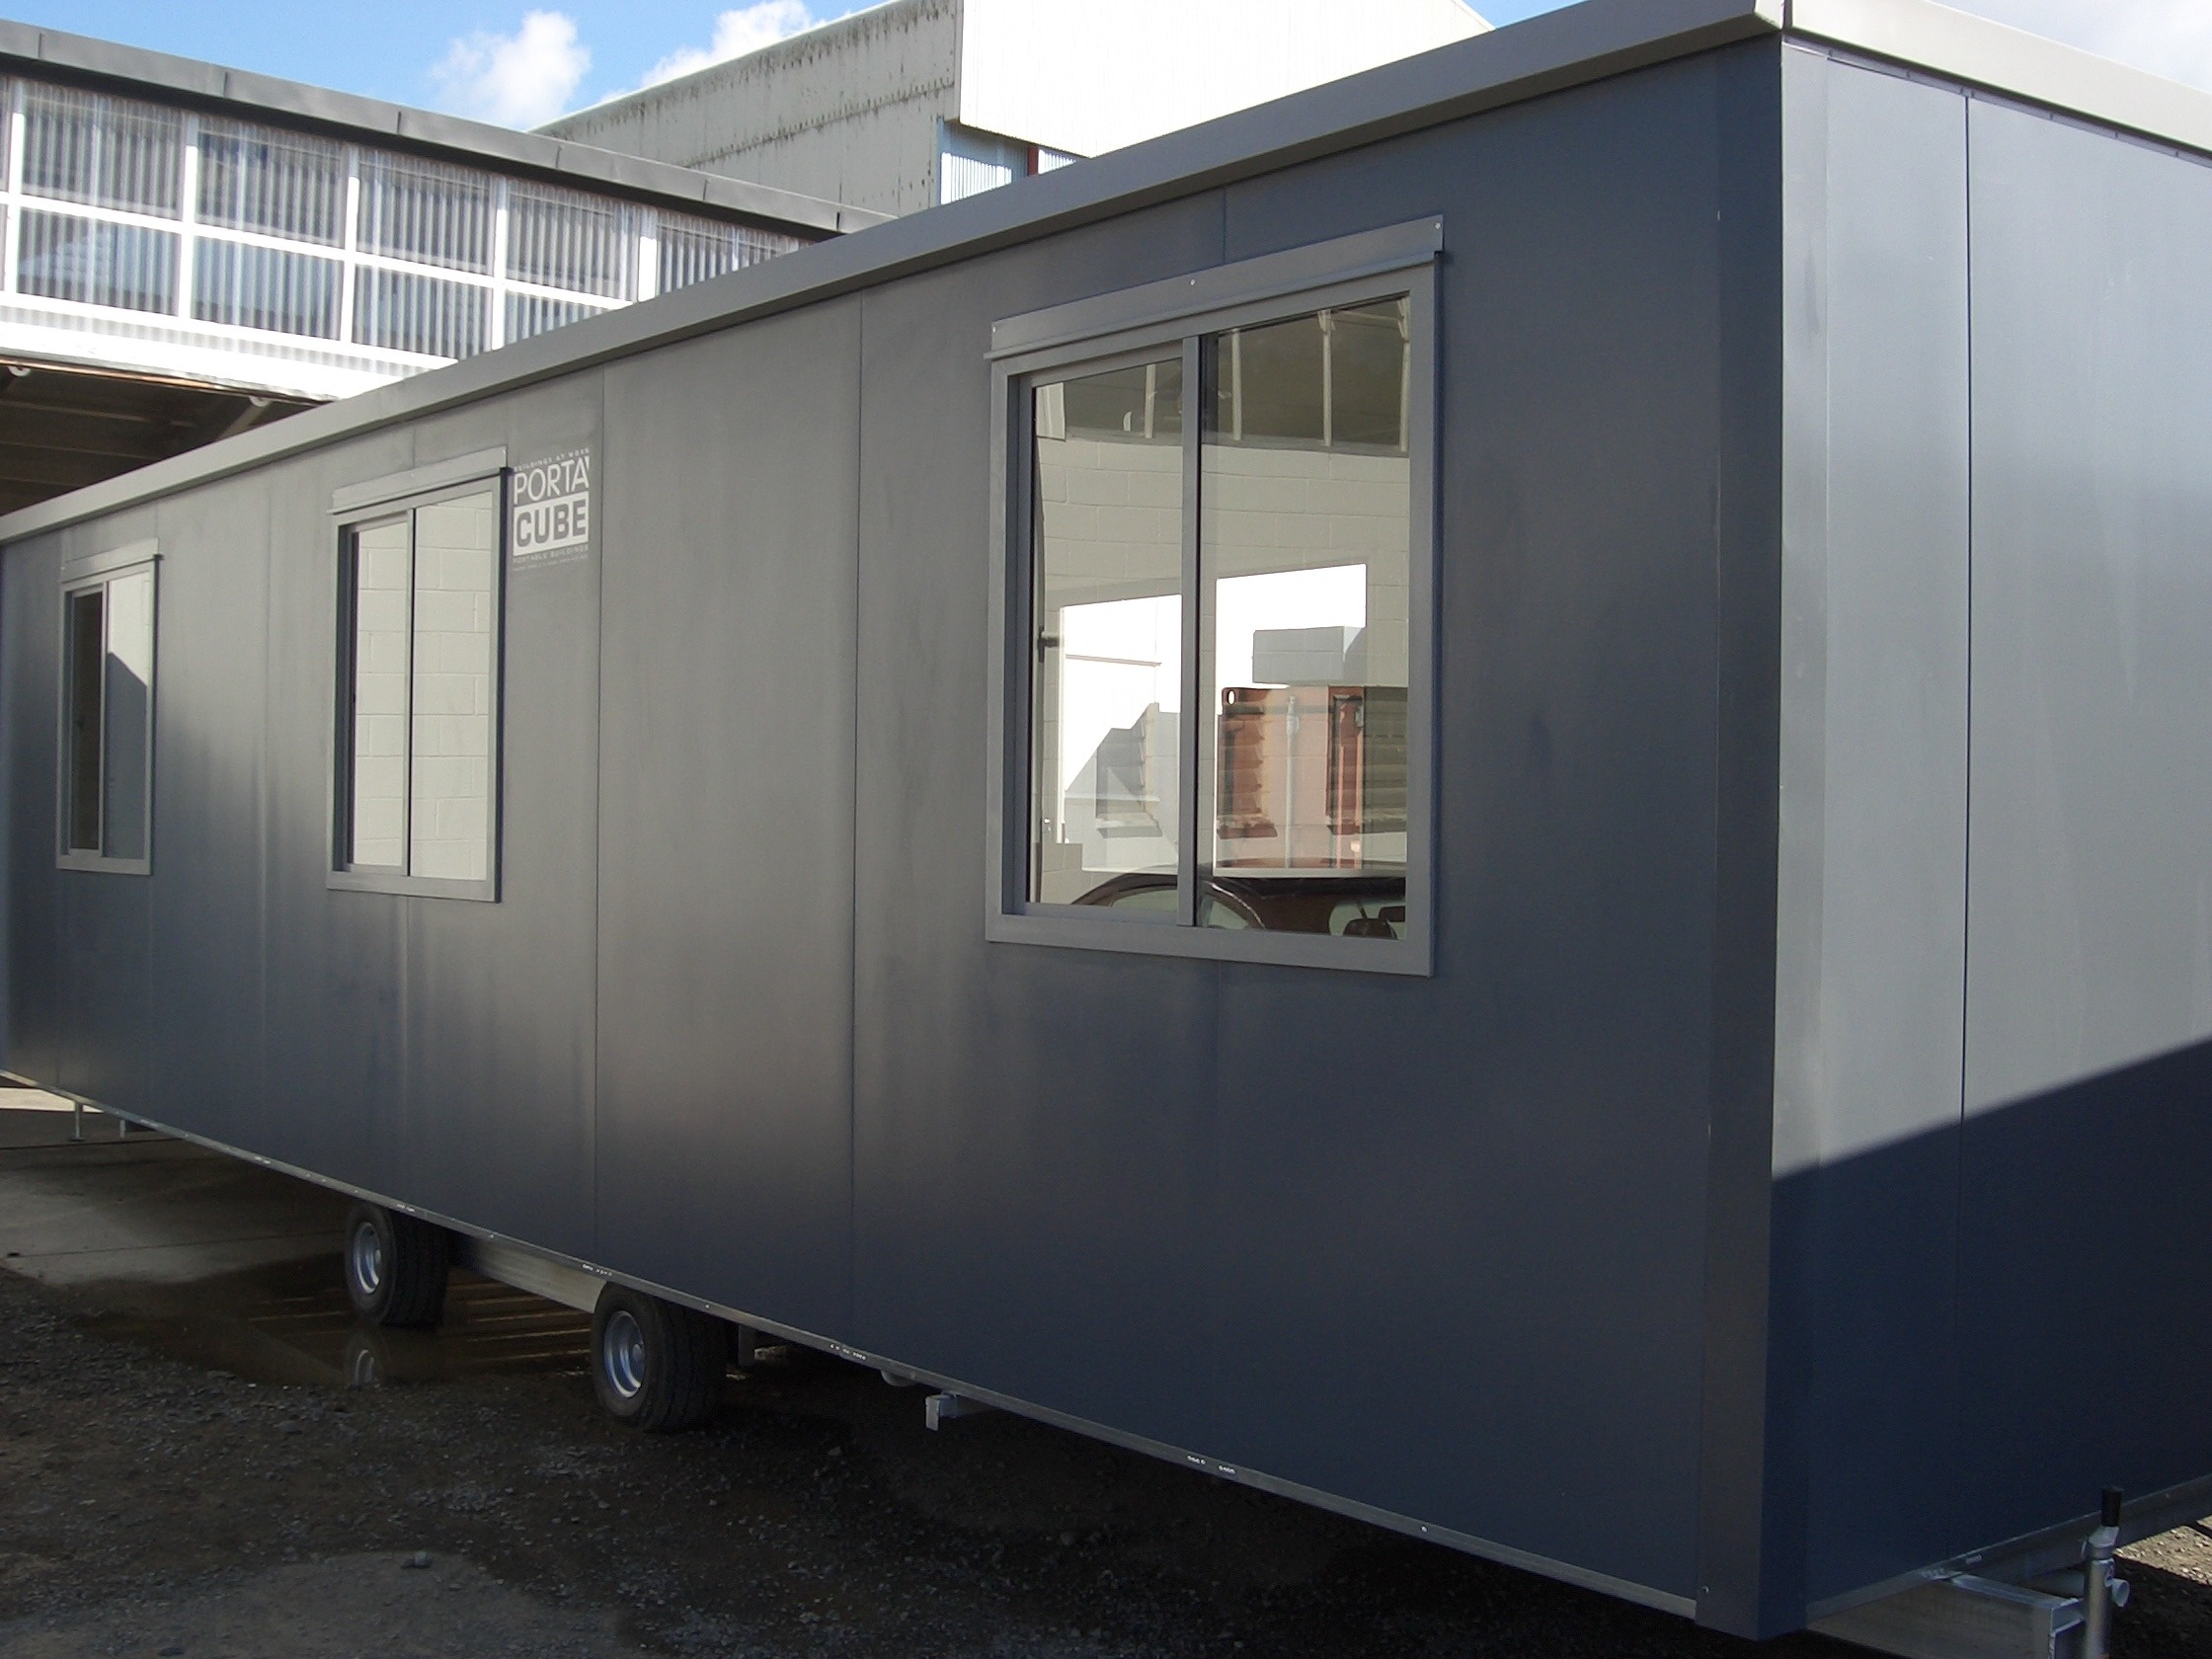 Portacube 3 from Cube Portable Buildings